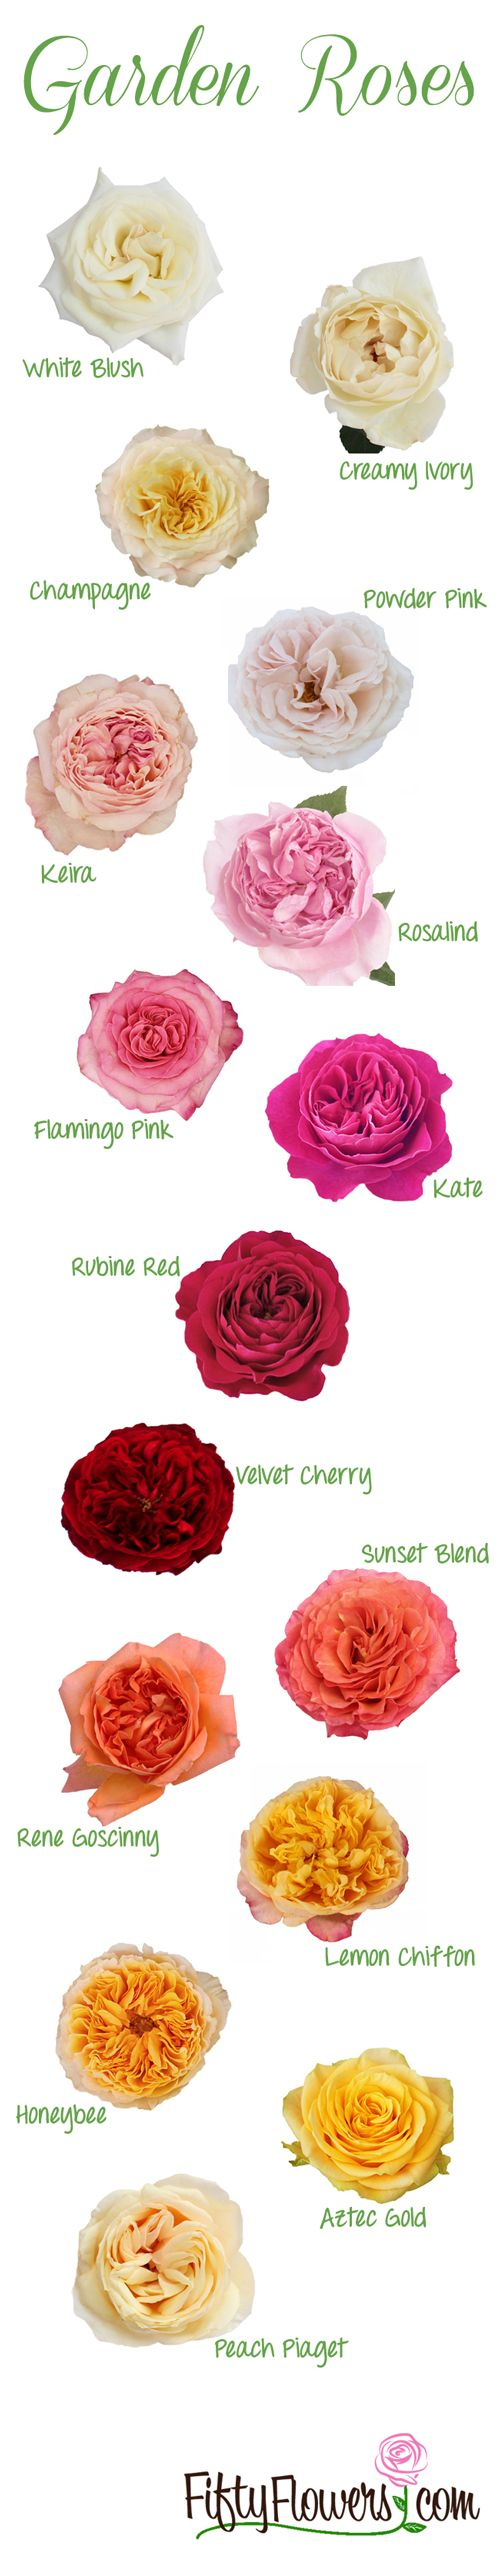 These are just some of the Gorgeous Garden Roses available at FiftyFlowers.com! Click Through to see All the Garden Roses we offer!